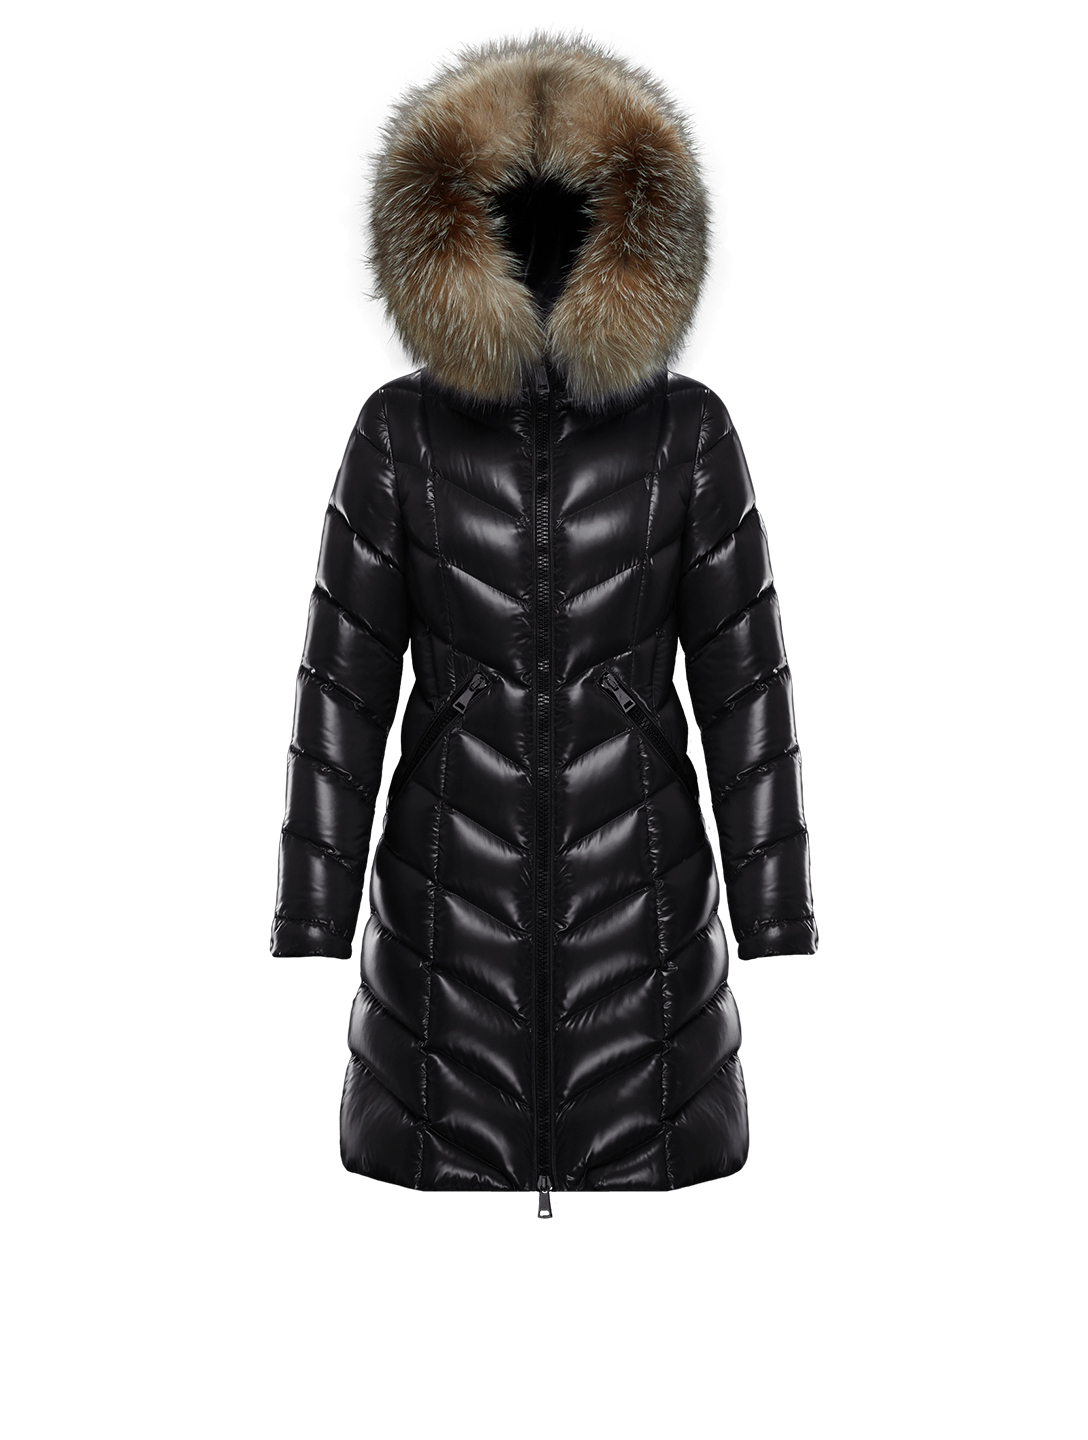 MONCLER Fulmarus Long Down Coat Women's Black